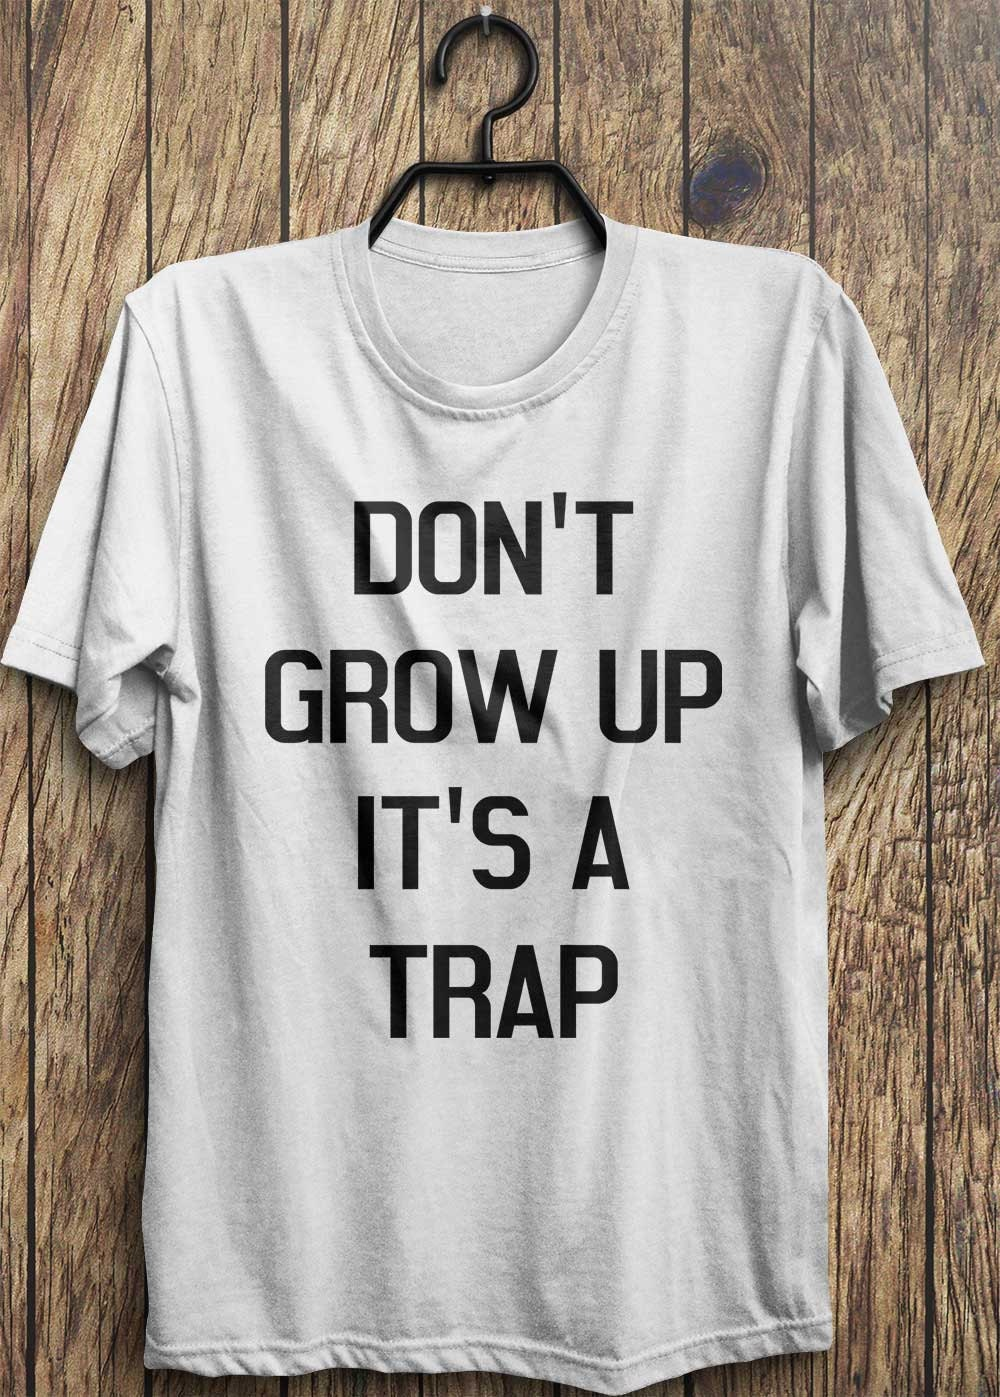 Trap t shirt don 39 t grow up its a trap top rad by trendingtops for Shirts with graphics on the back